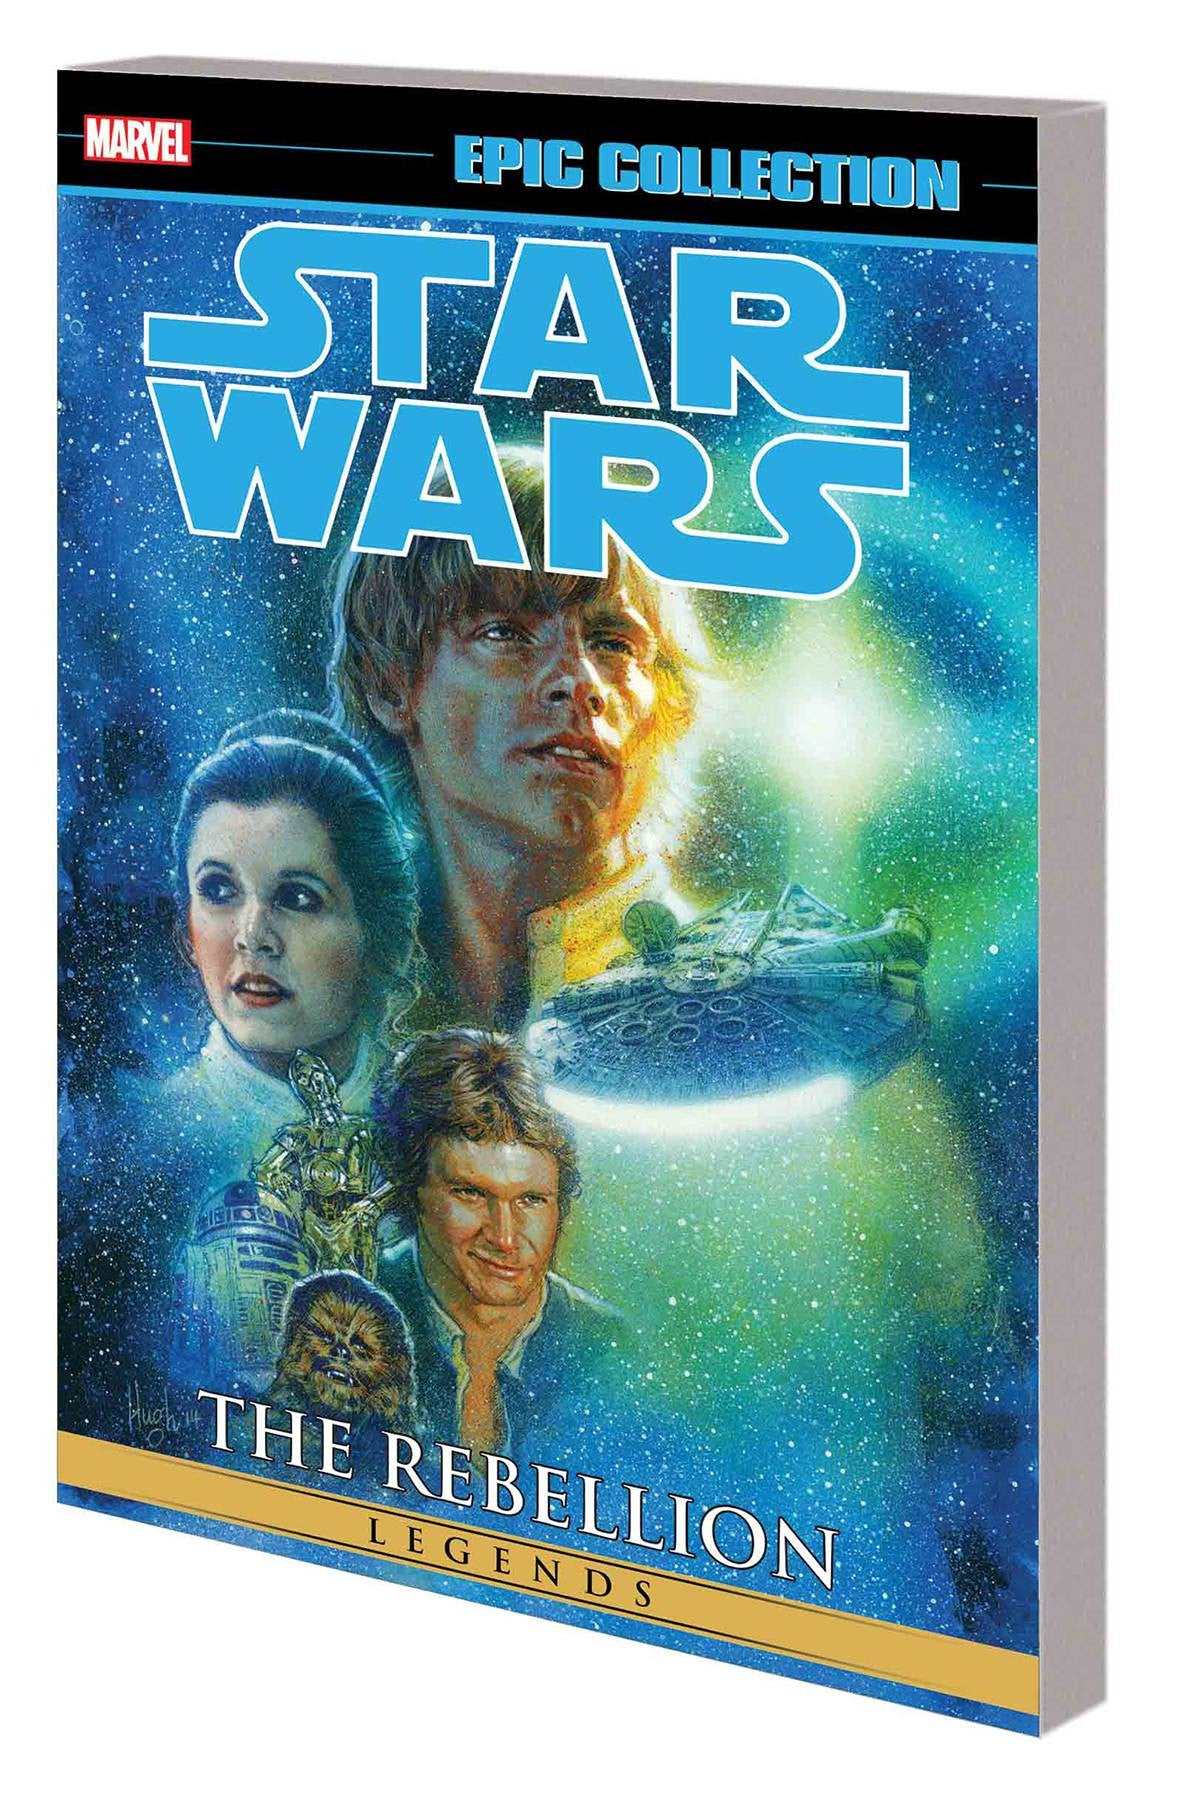 STAR WARS LEGENDS EPIC COLLECTION TP VOL 02 REBELLION